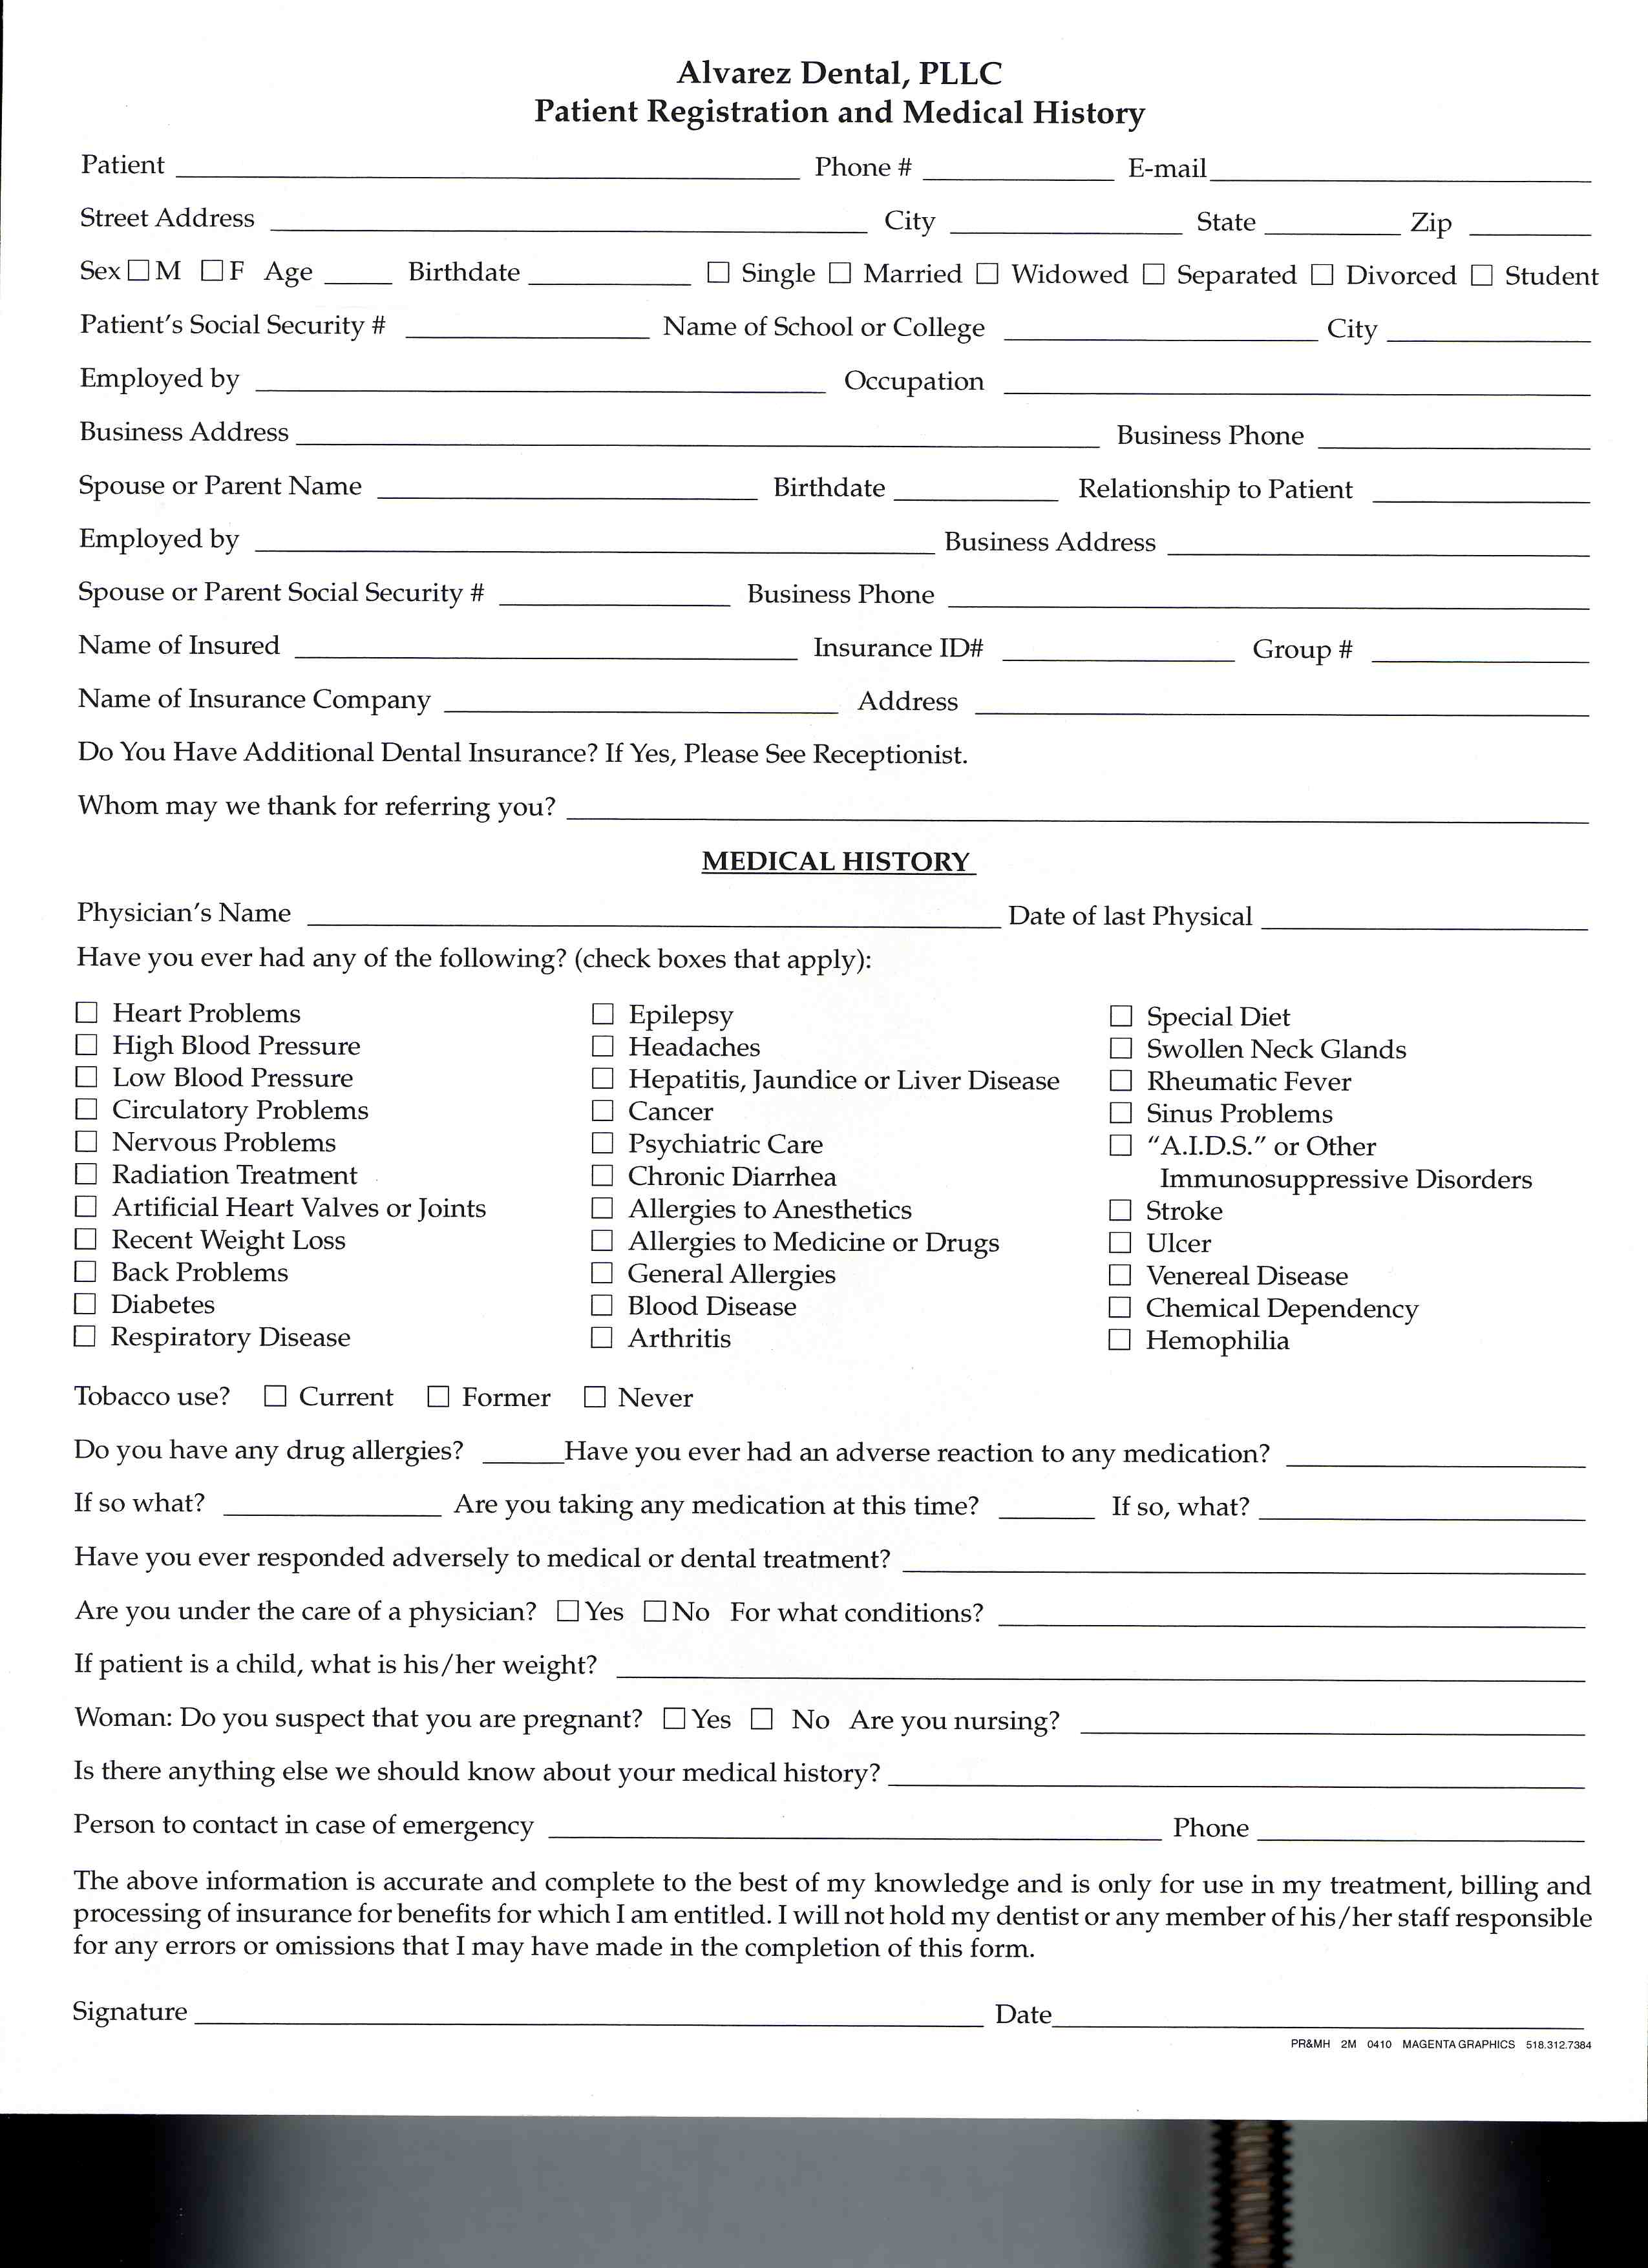 Dentists in albany ny spanish hippa oral hygiene questionaire new patient forms altavistaventures Image collections